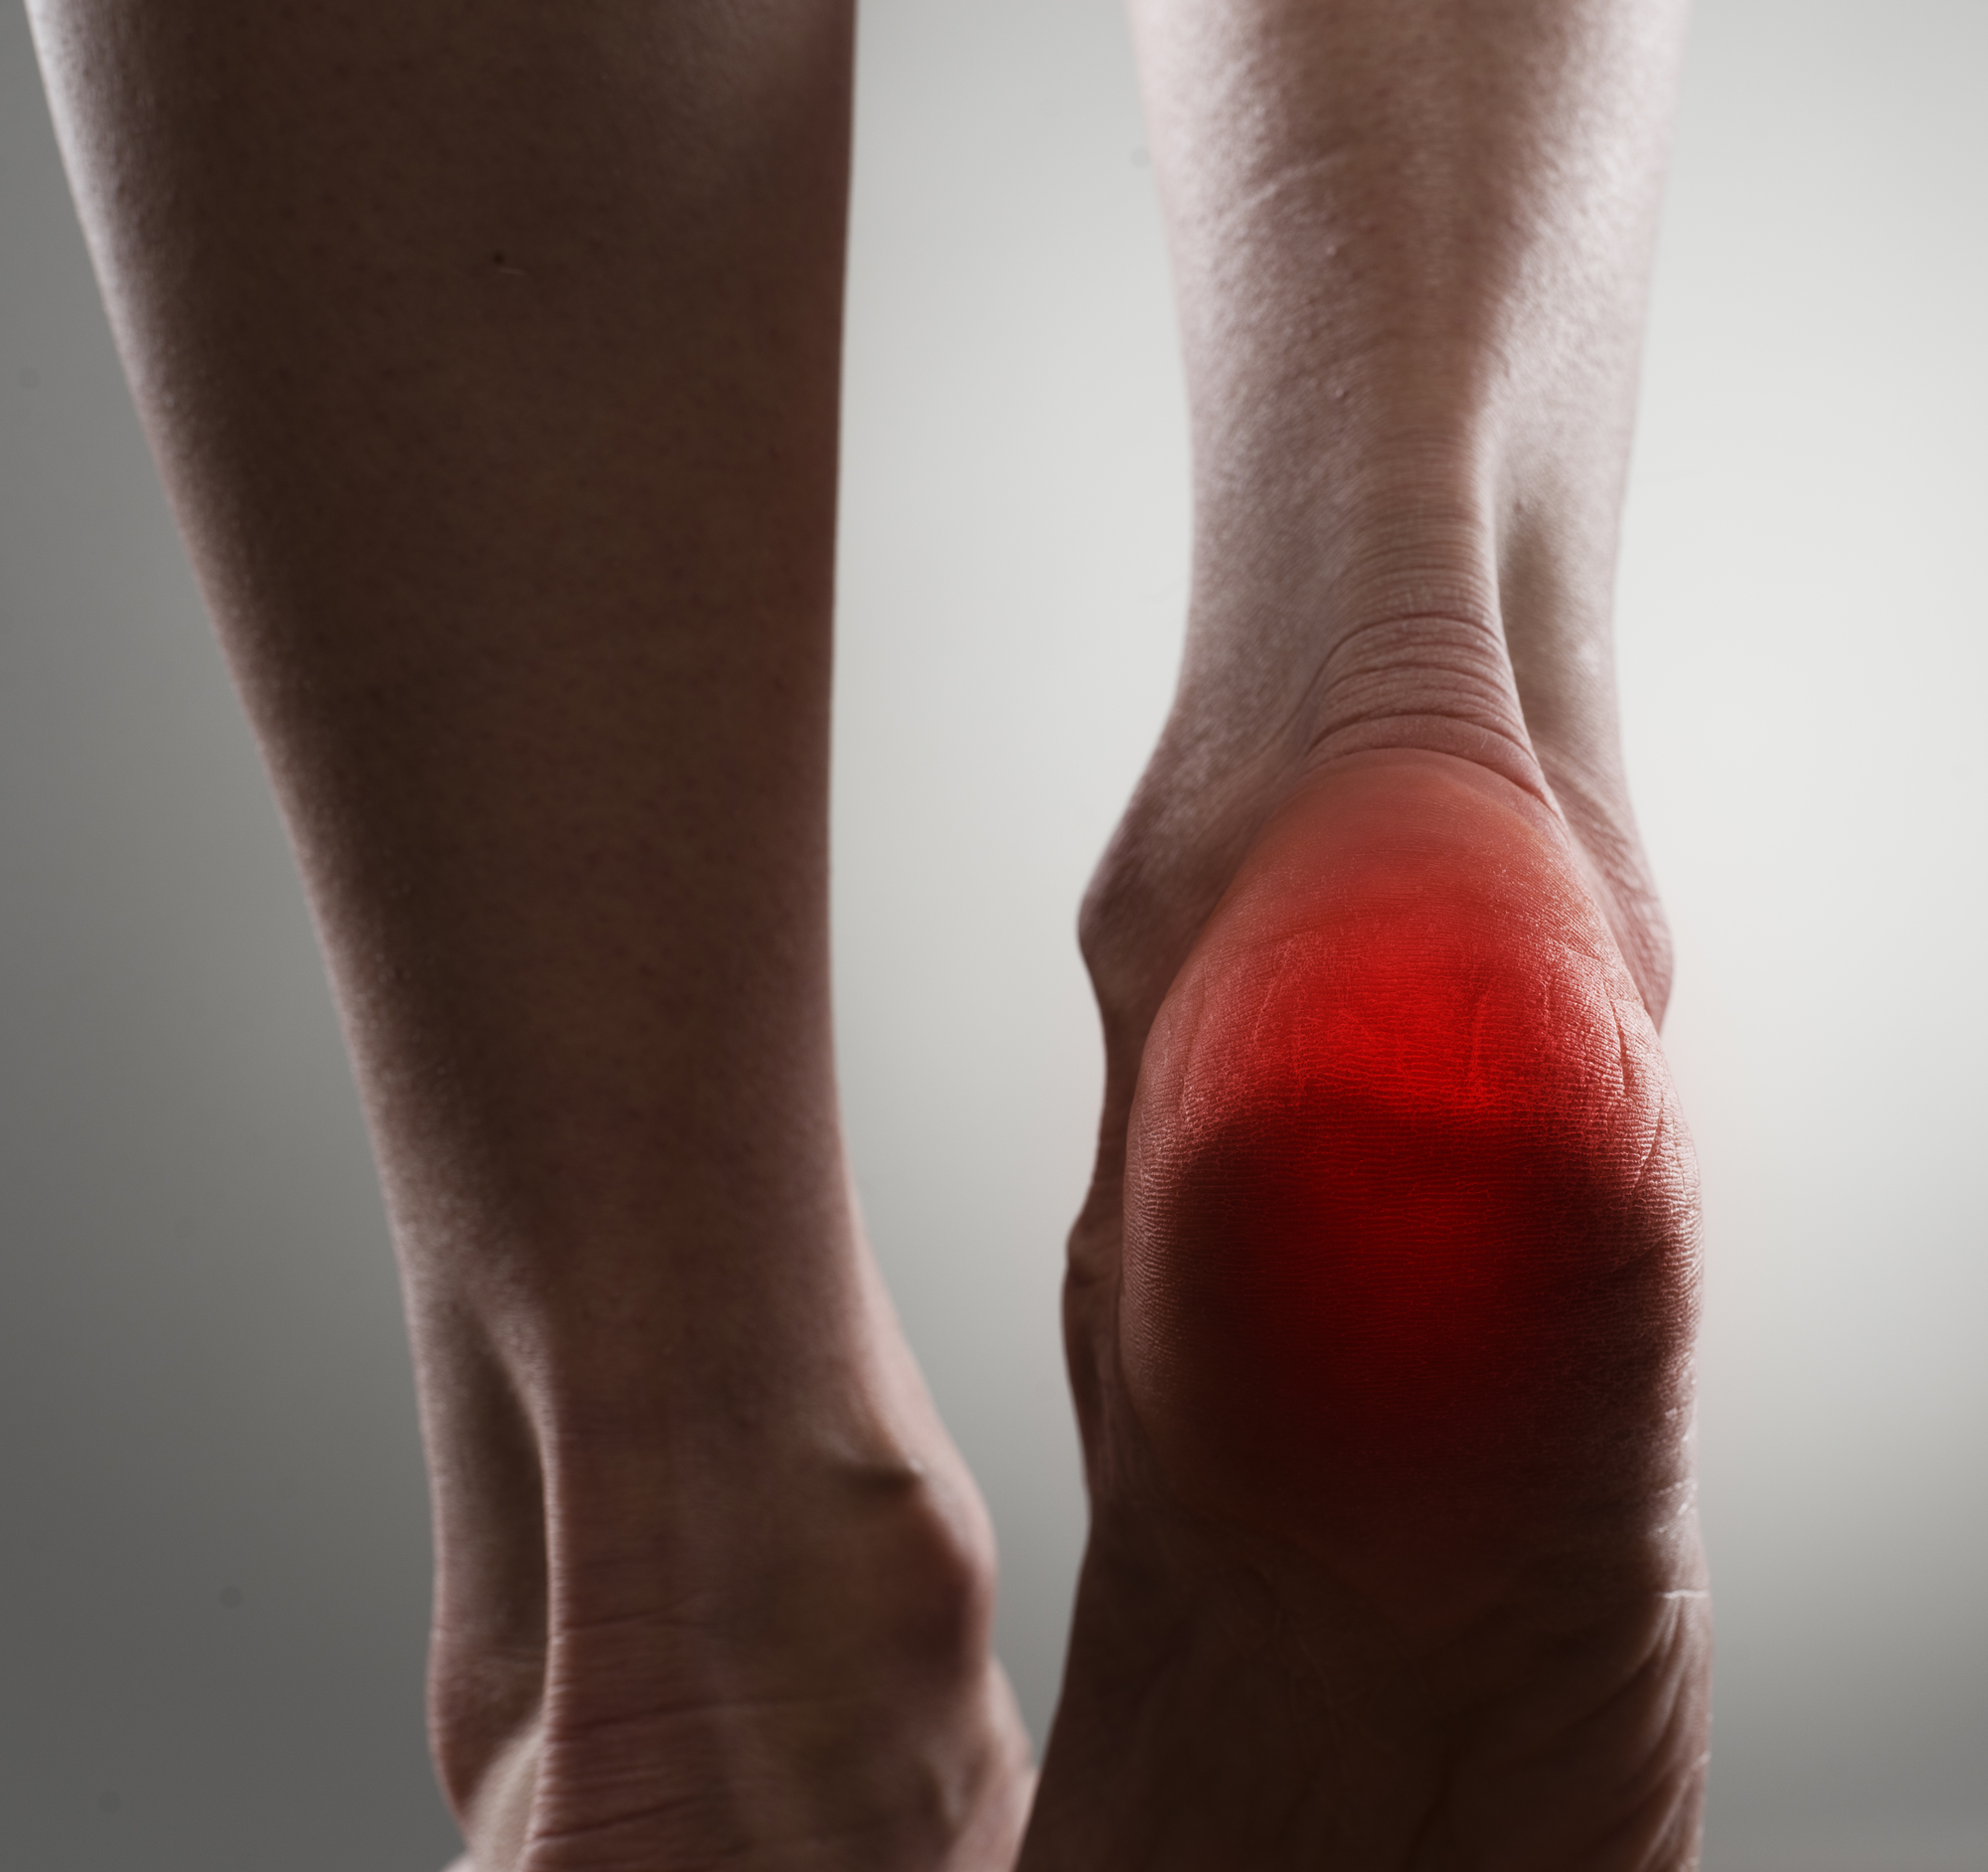 Heel pain 3 - Shockwave Therapy for Heel Pain and Heel Spurs